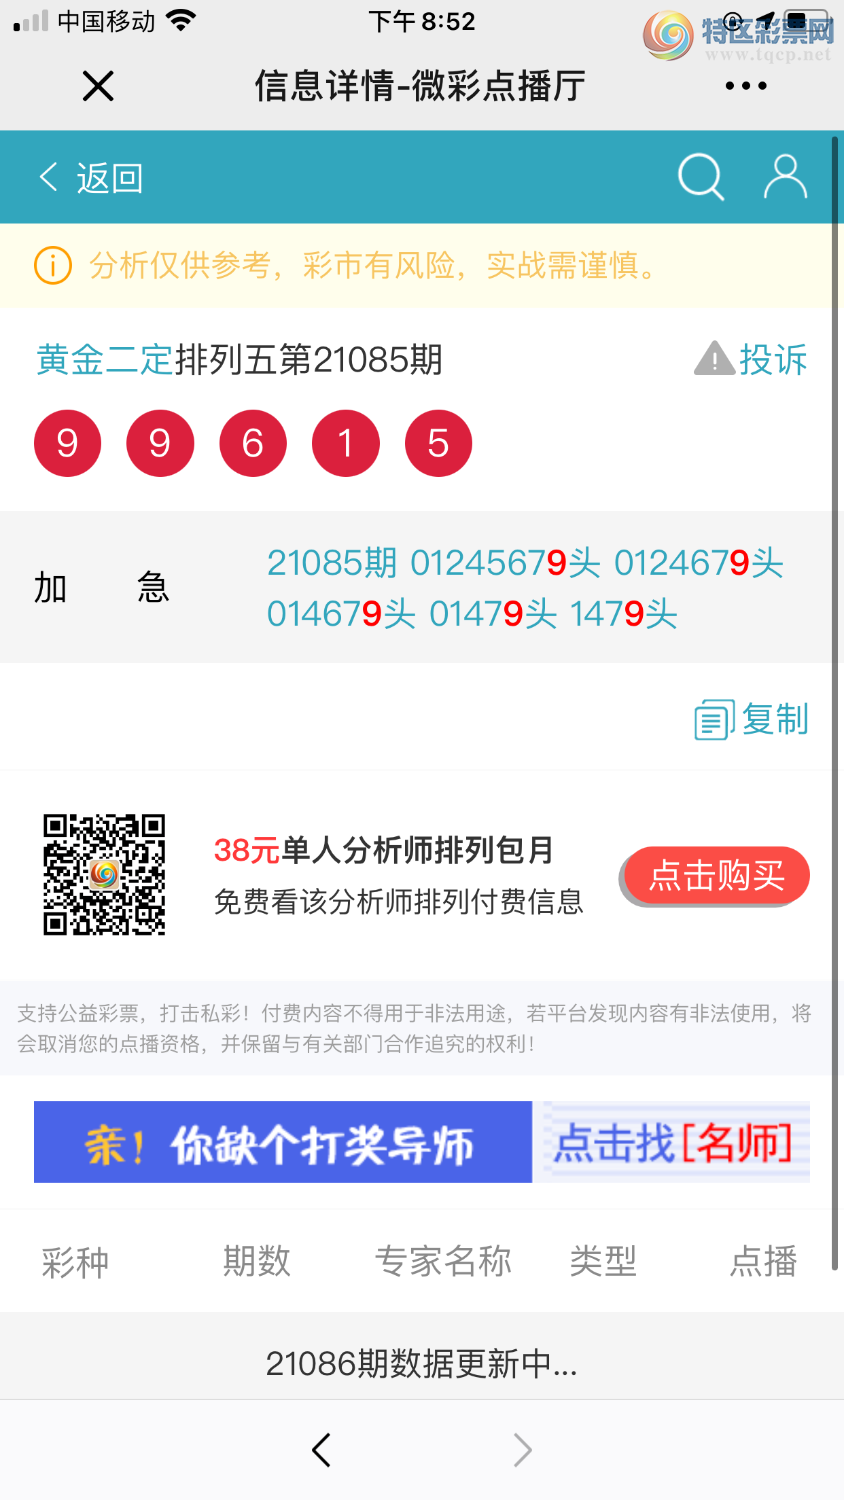 D825CCA4-0E86-4A64-9820-ADC3BFF589F7.png